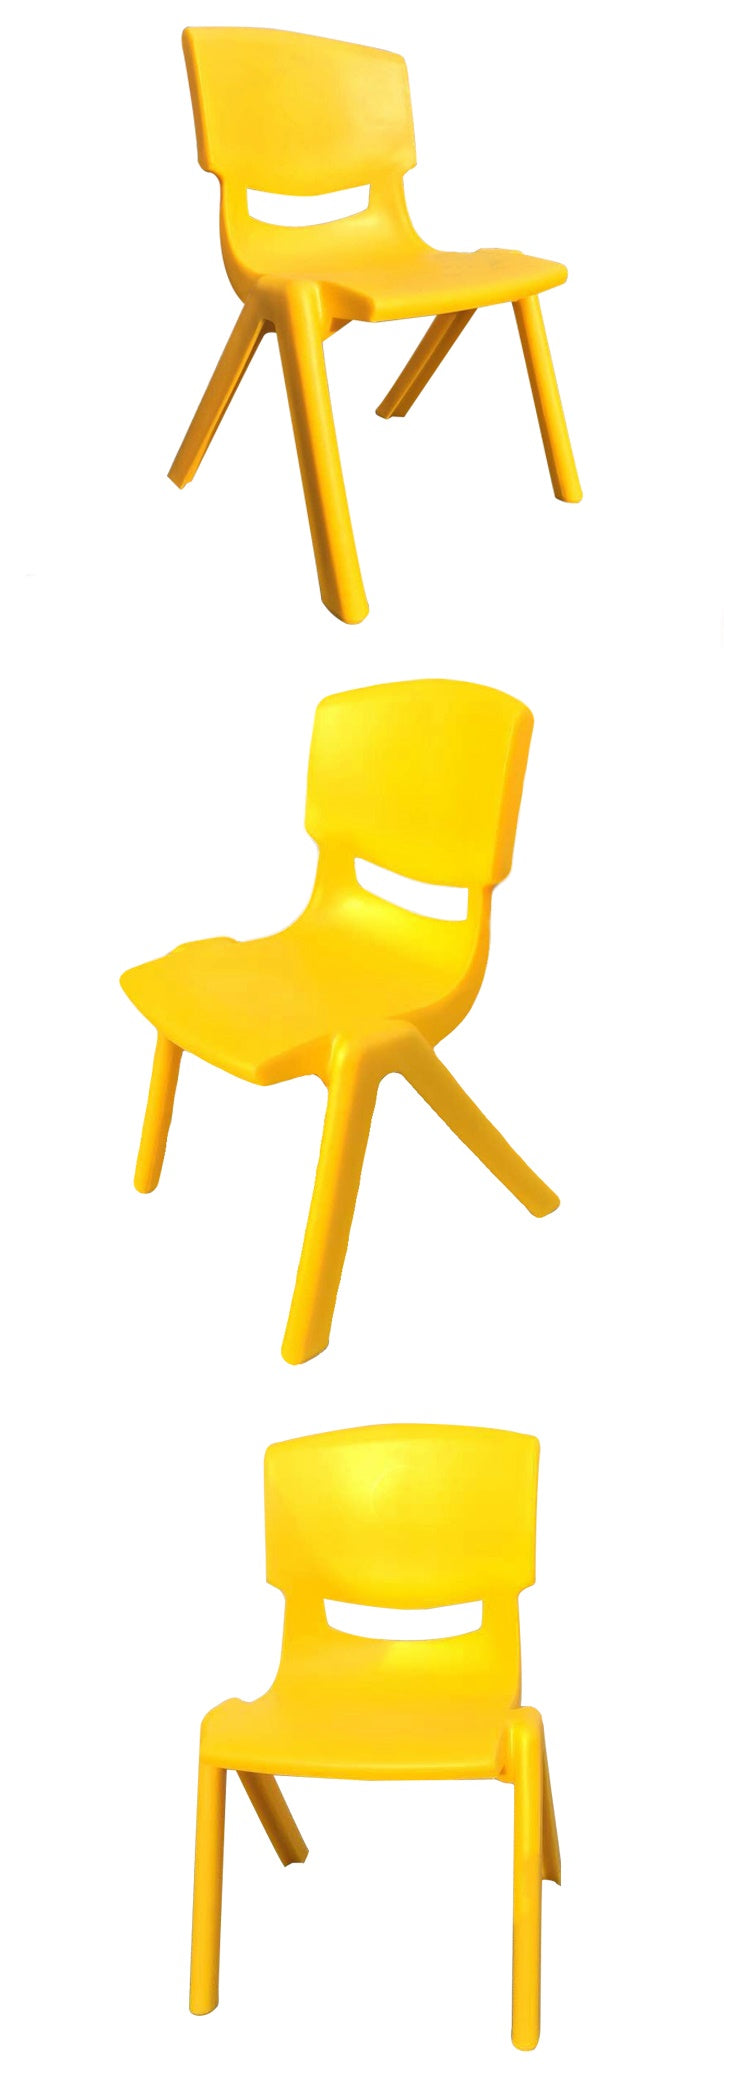 SET OF 4 YELLOW CHILDRENS CHAIRS FOR CHILDRENS TABLE HOLDS UP TO 100KG